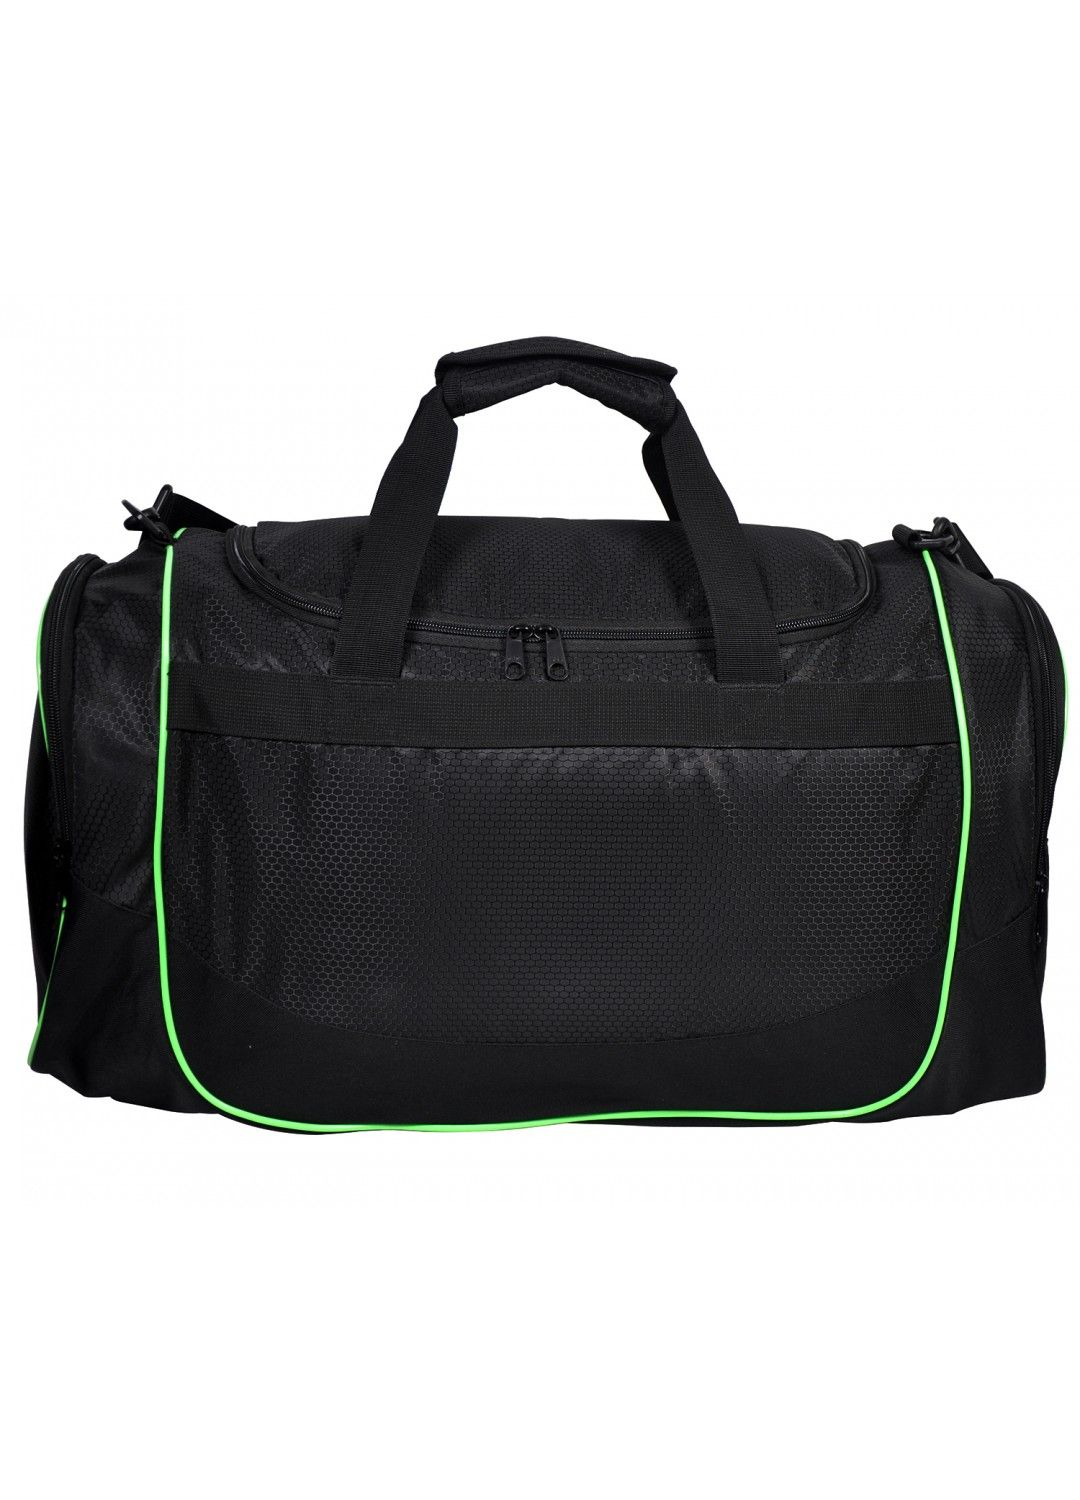 8972d6dd7 MIER Men Gym Bag with Shoes Compartment Sports Duffel Bag, 24inch, Medium,  Black